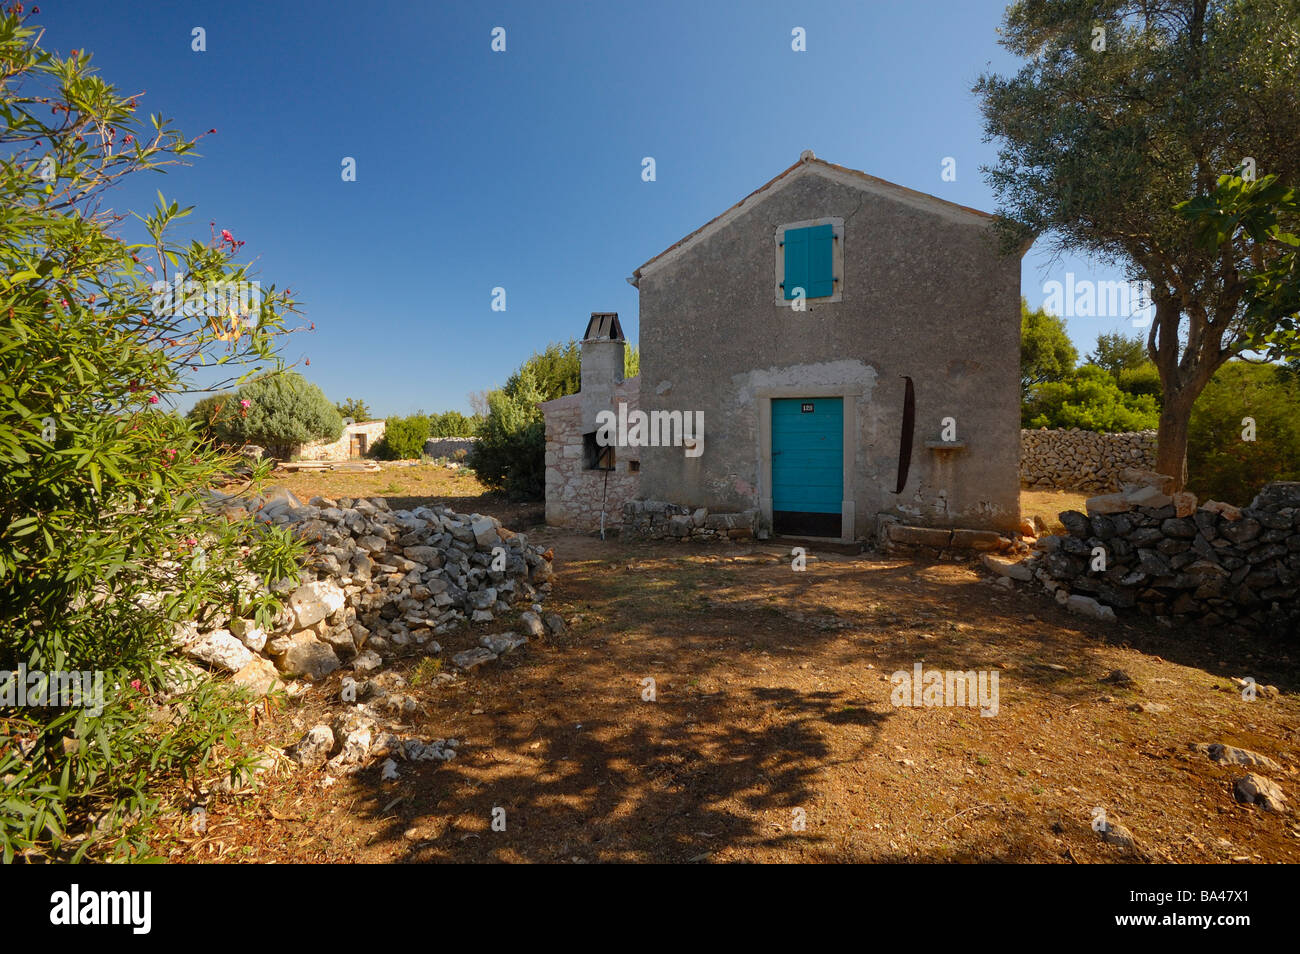 Typical Mediterranean house and courtyard on island Cres, Croatia, Europe - Stock Image